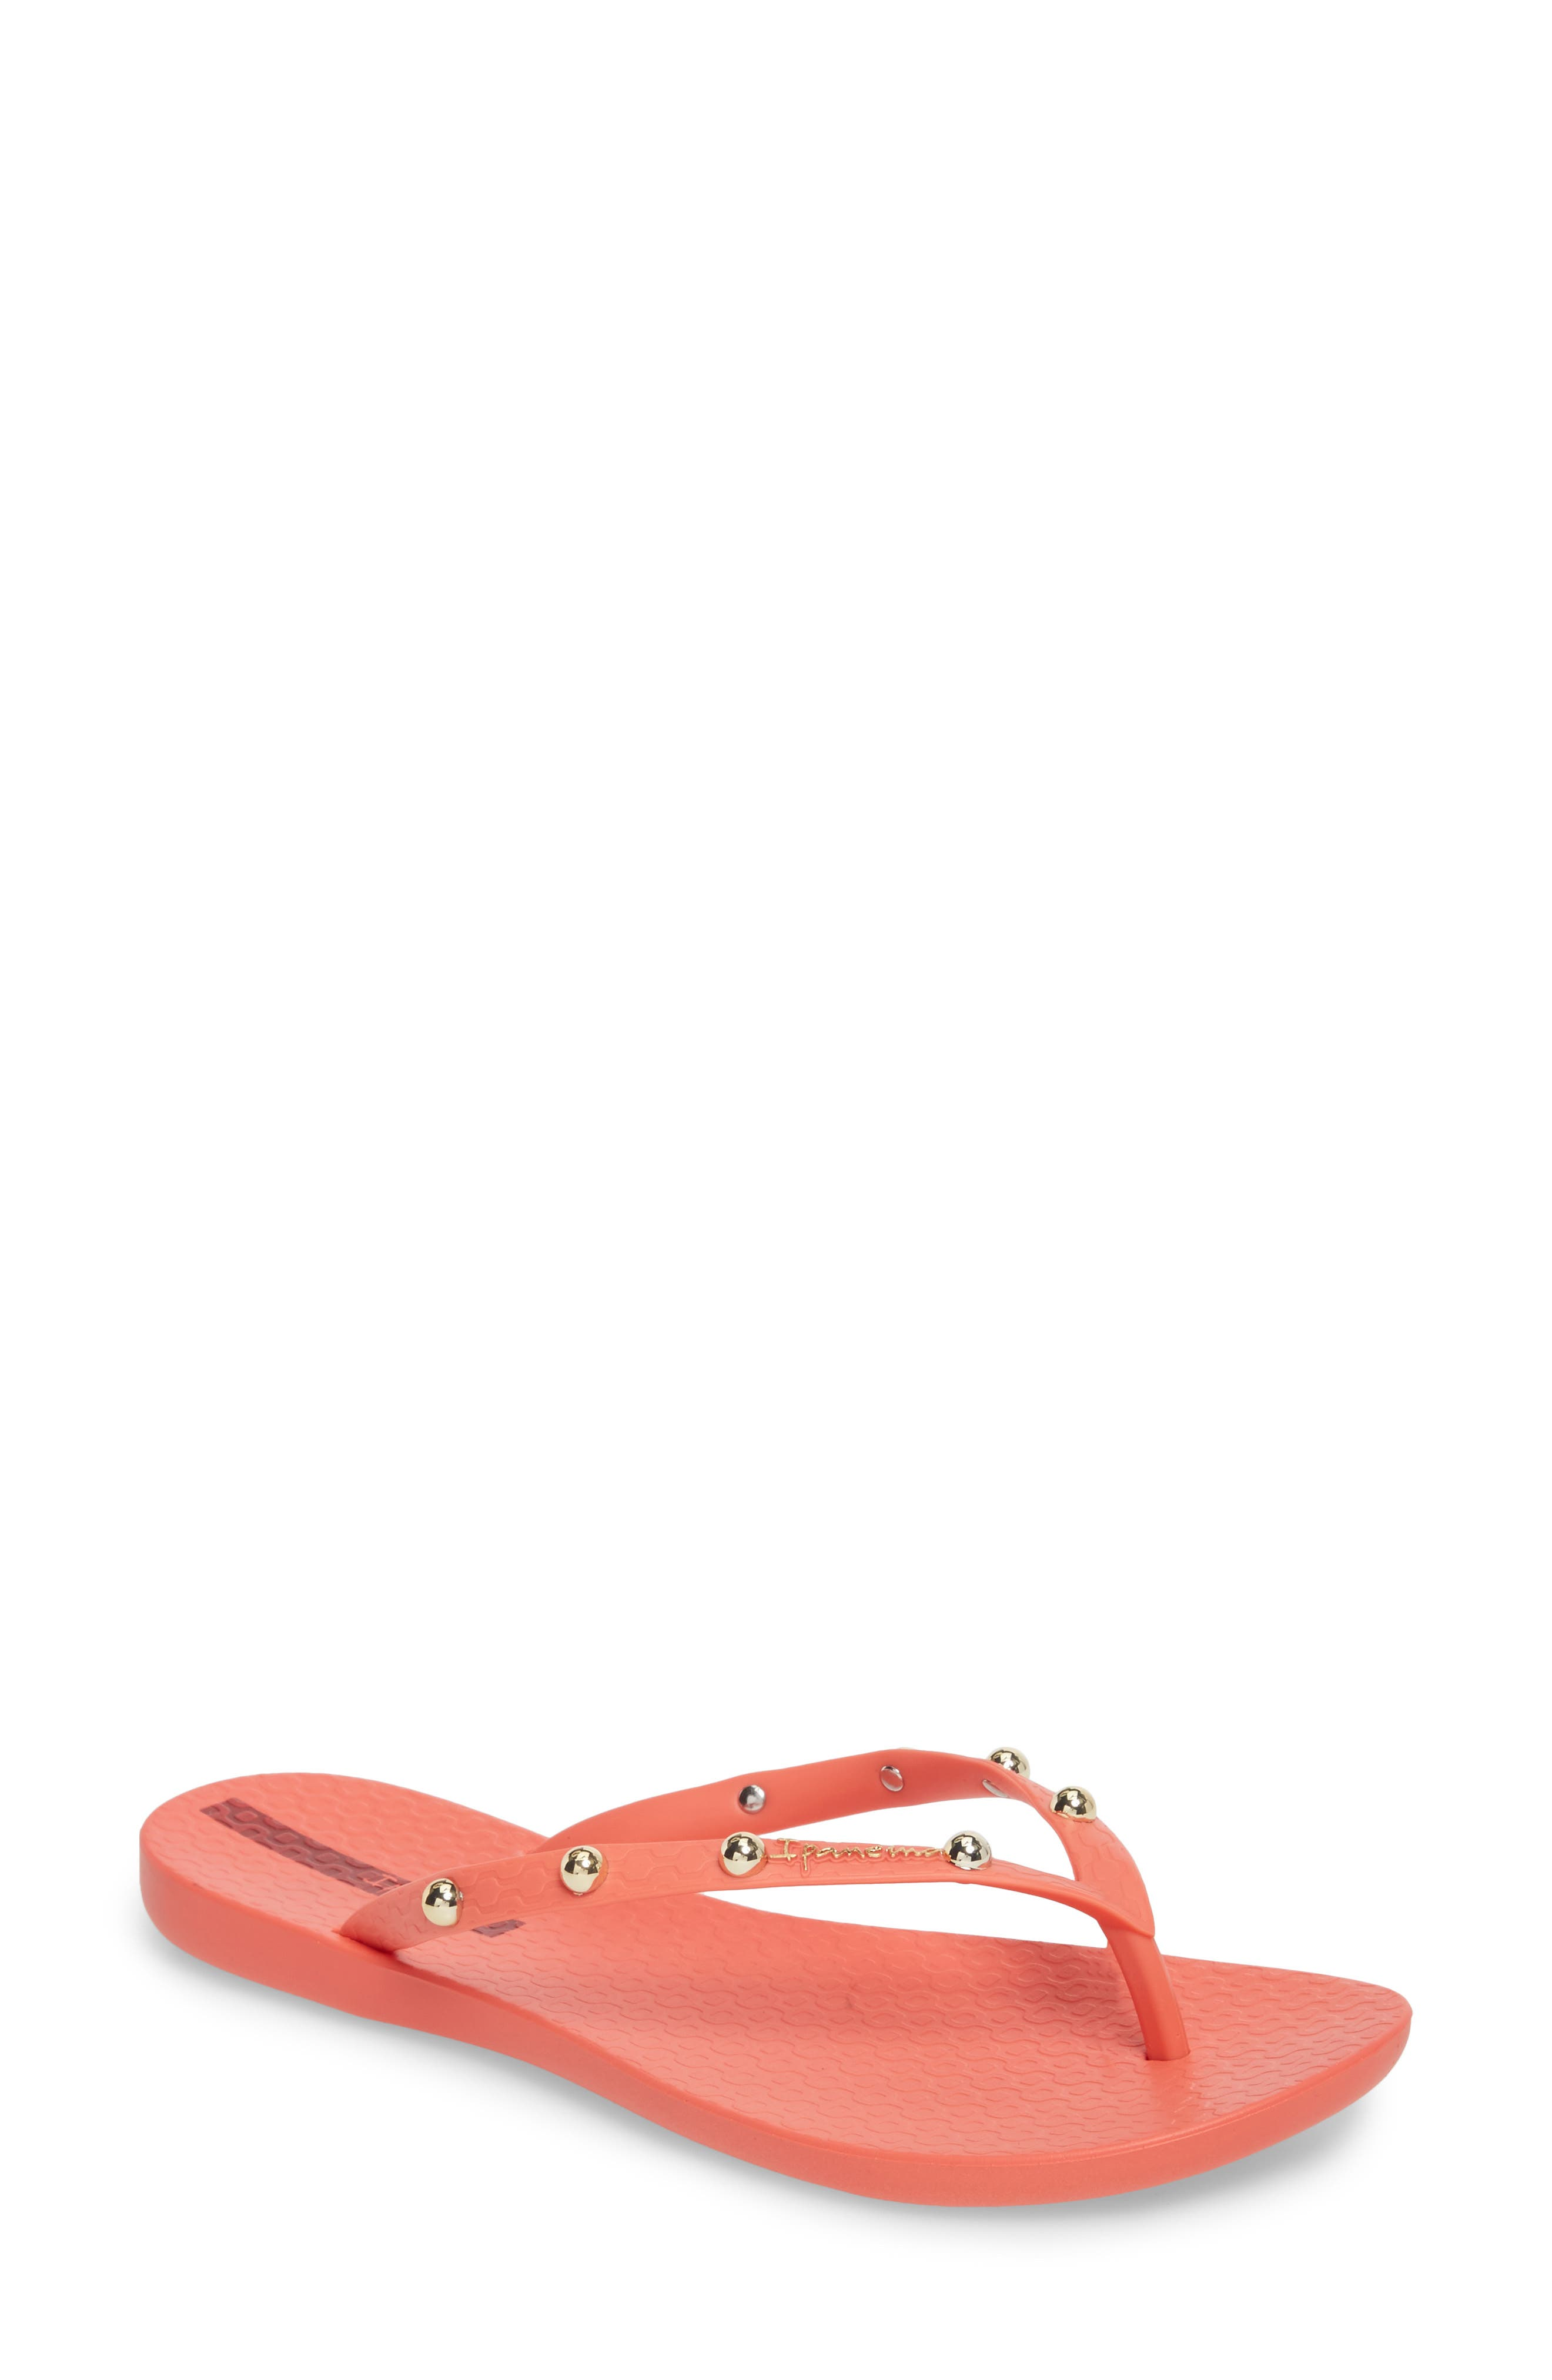 Main Image - Ipanema Wave Studs Flip Flop (Women)